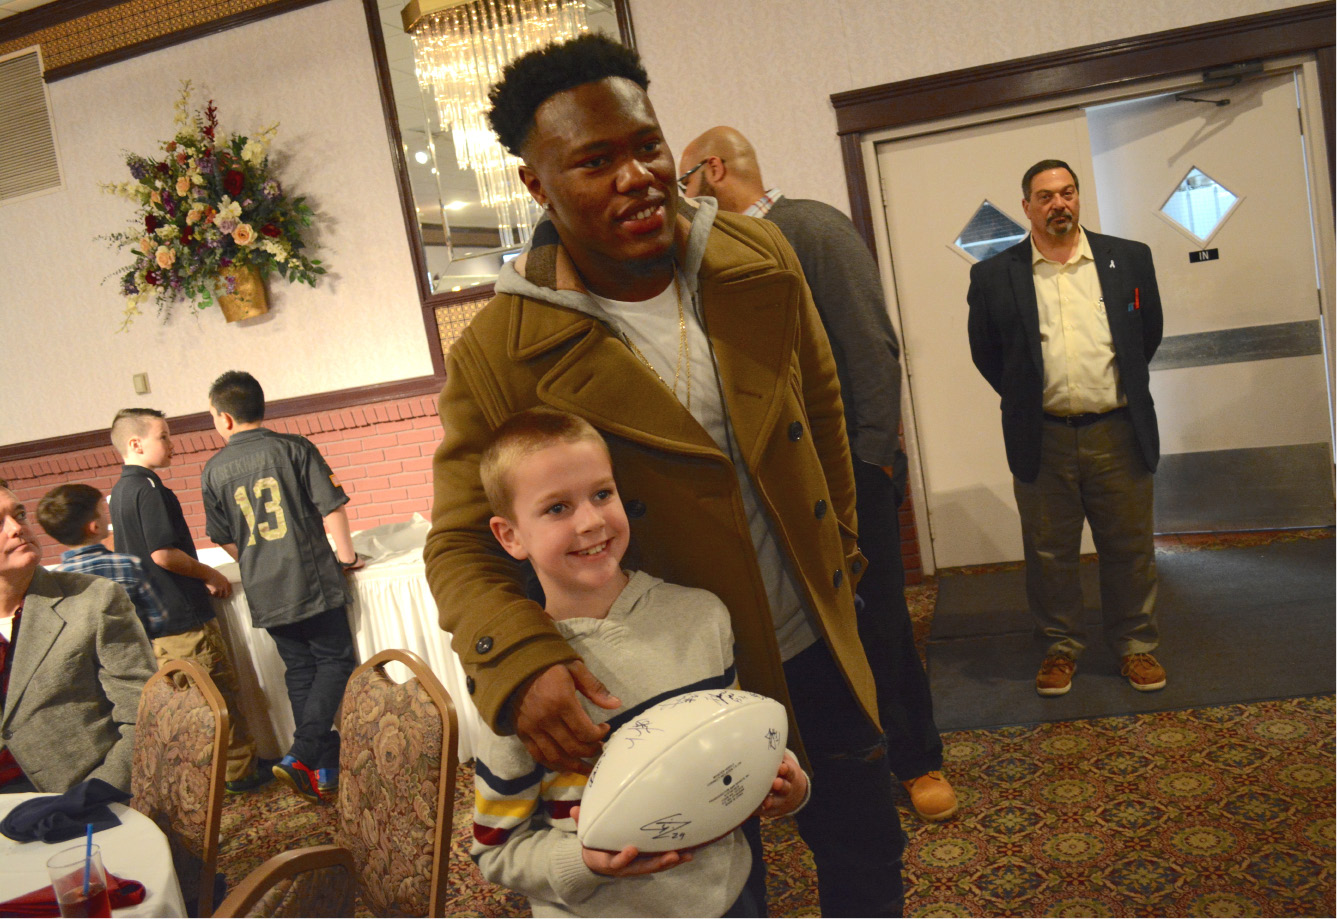 New England Patriots cornerback Cyrus Jones poses with Ryan Plouffe at the United Way 2017 NFL Players Weekend dinner on Friday, March 10, 2017. | Bryan Lipiner, Record-Journal